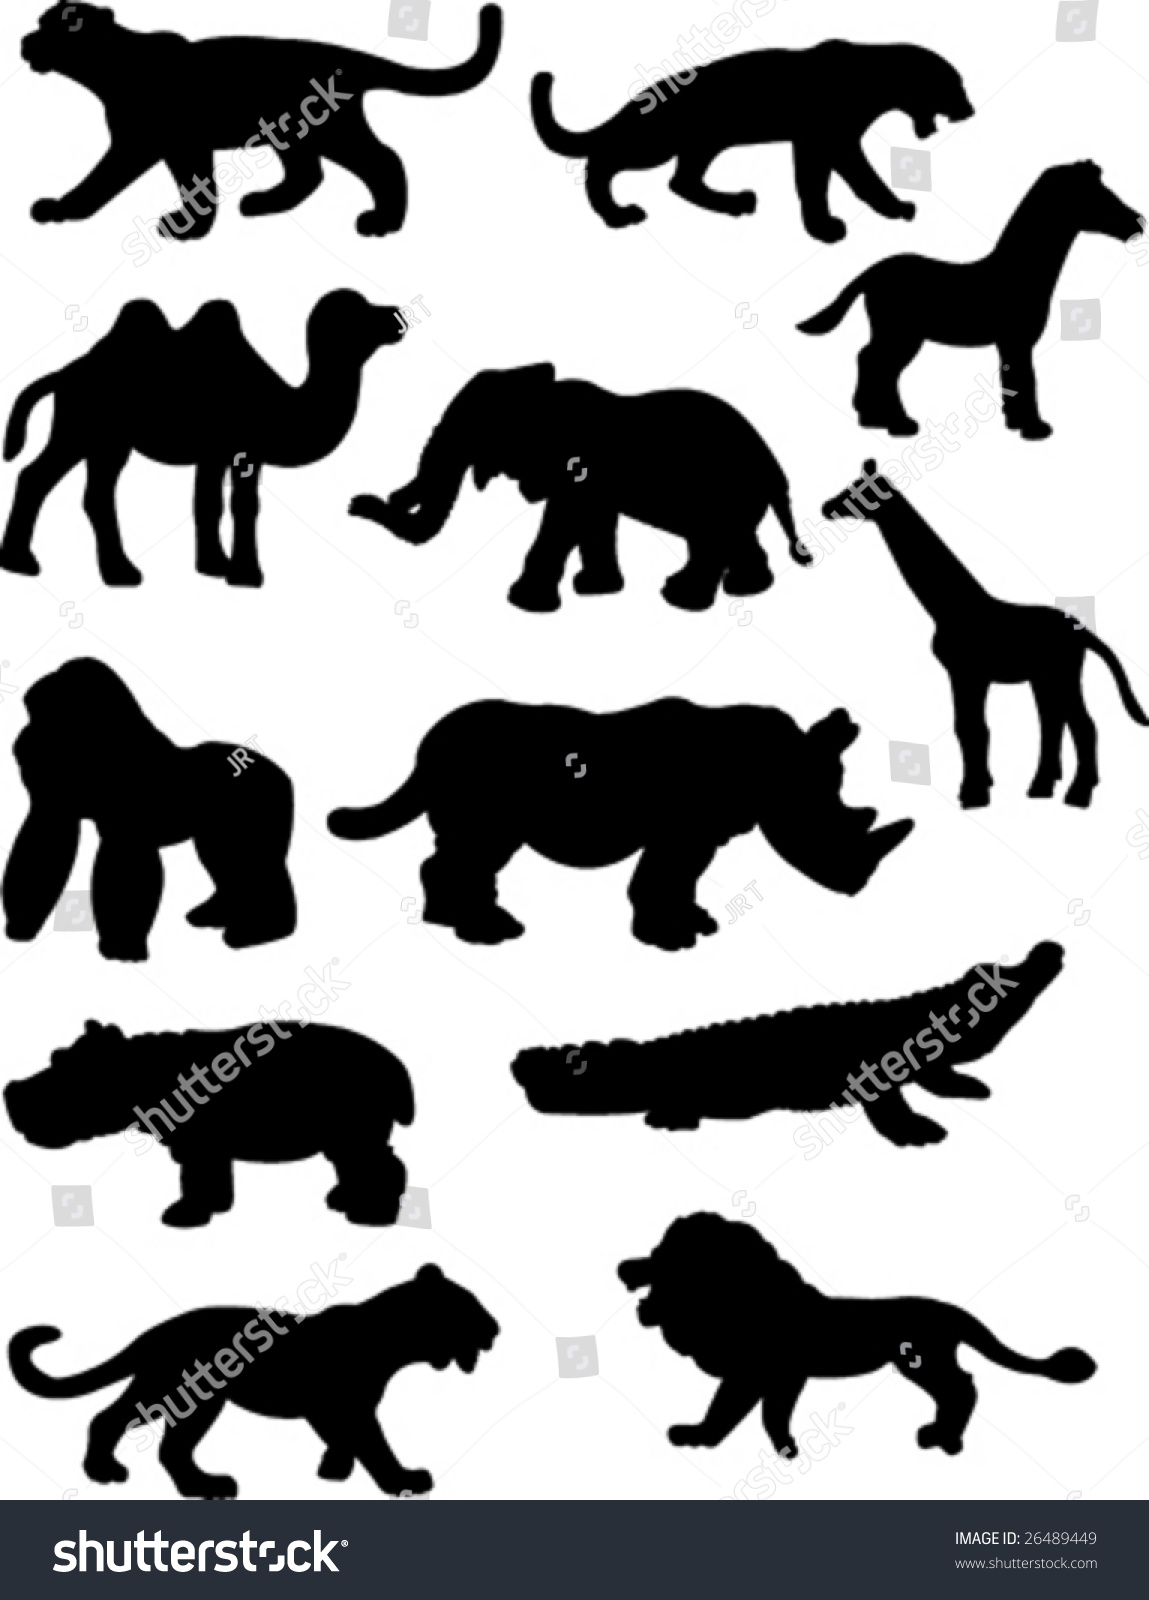 Jungle Animal Silhouettes Stock Vector 26489449 - Shutterstock